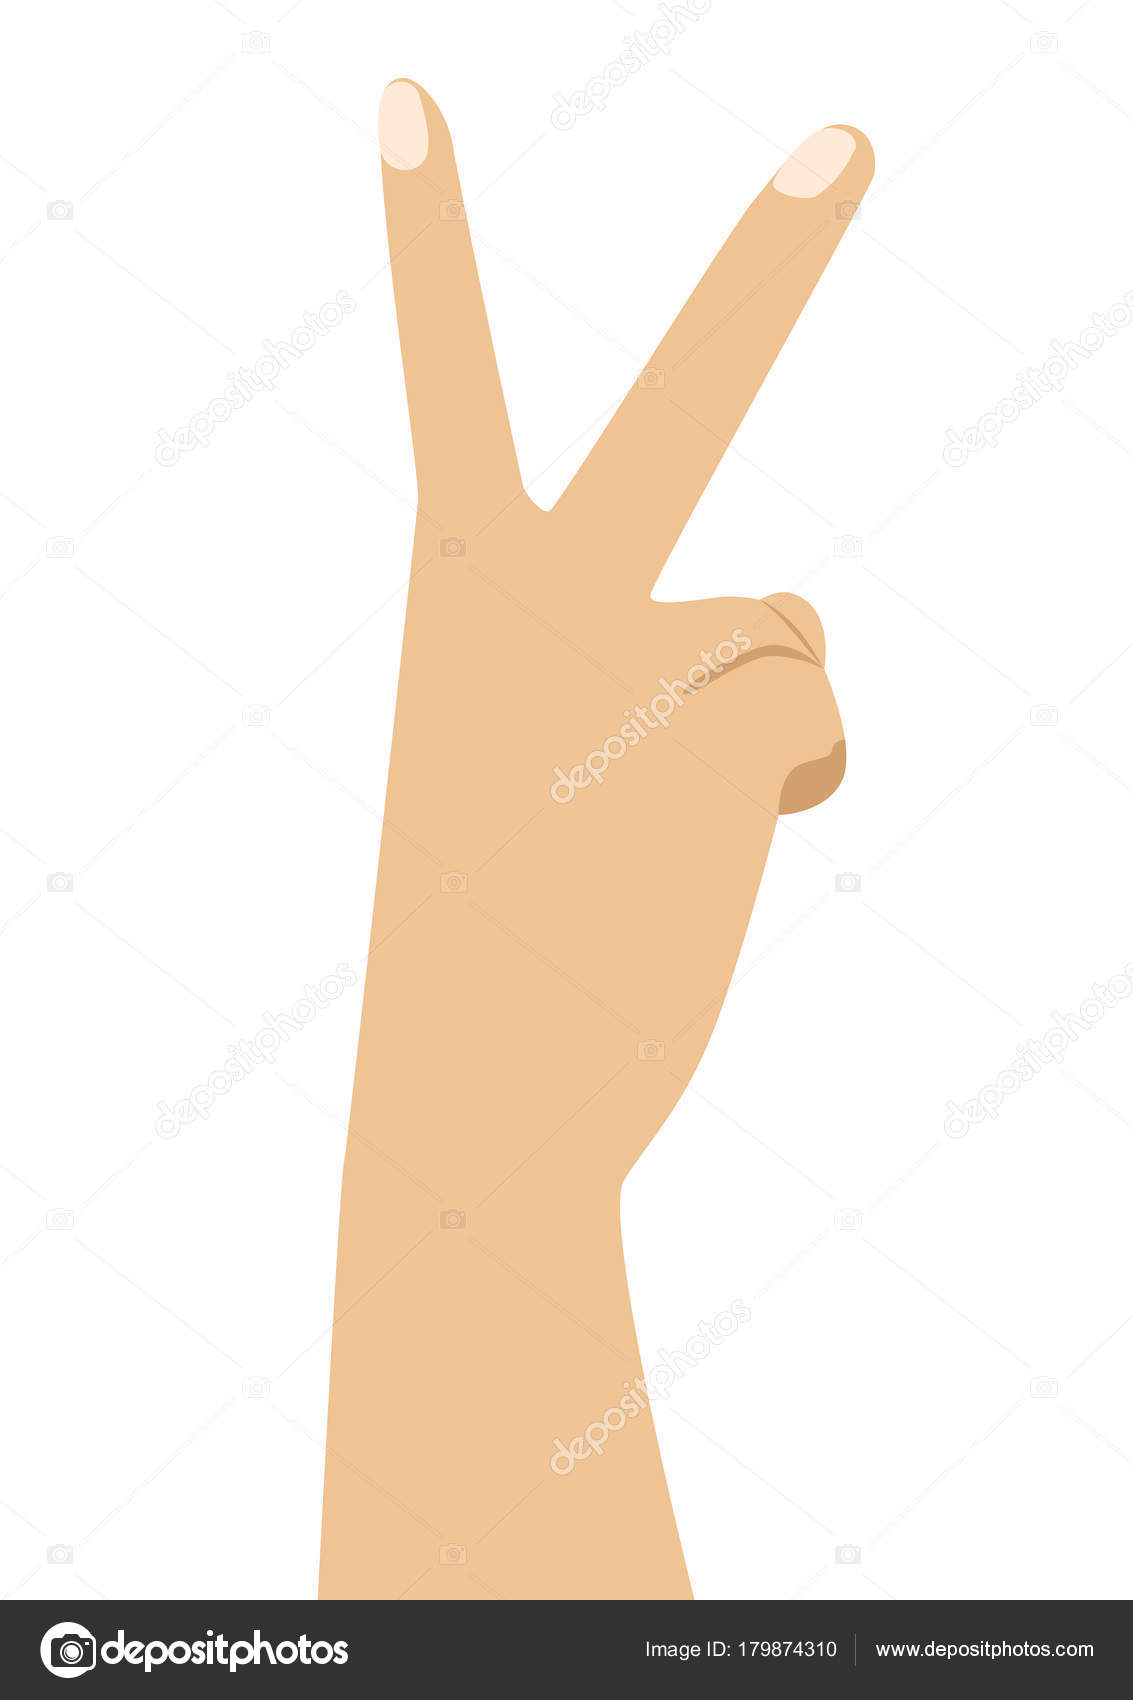 Hand With Two Fingers Up In Peace Or Victory Symbol The Sign For V